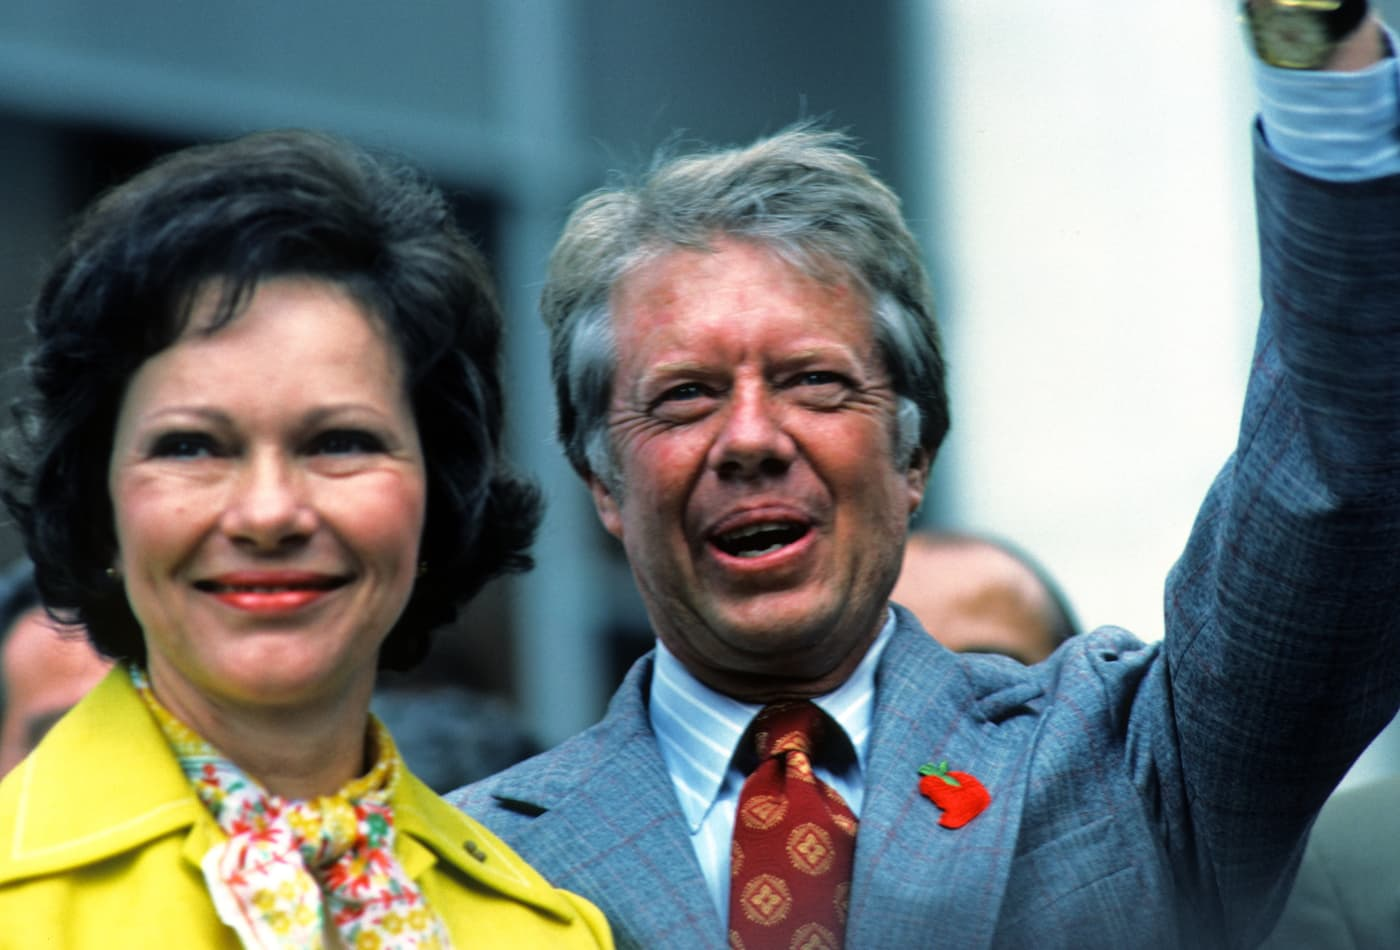 Jimmy and Rosalynn Carter speaking in New York on July 12, 1976